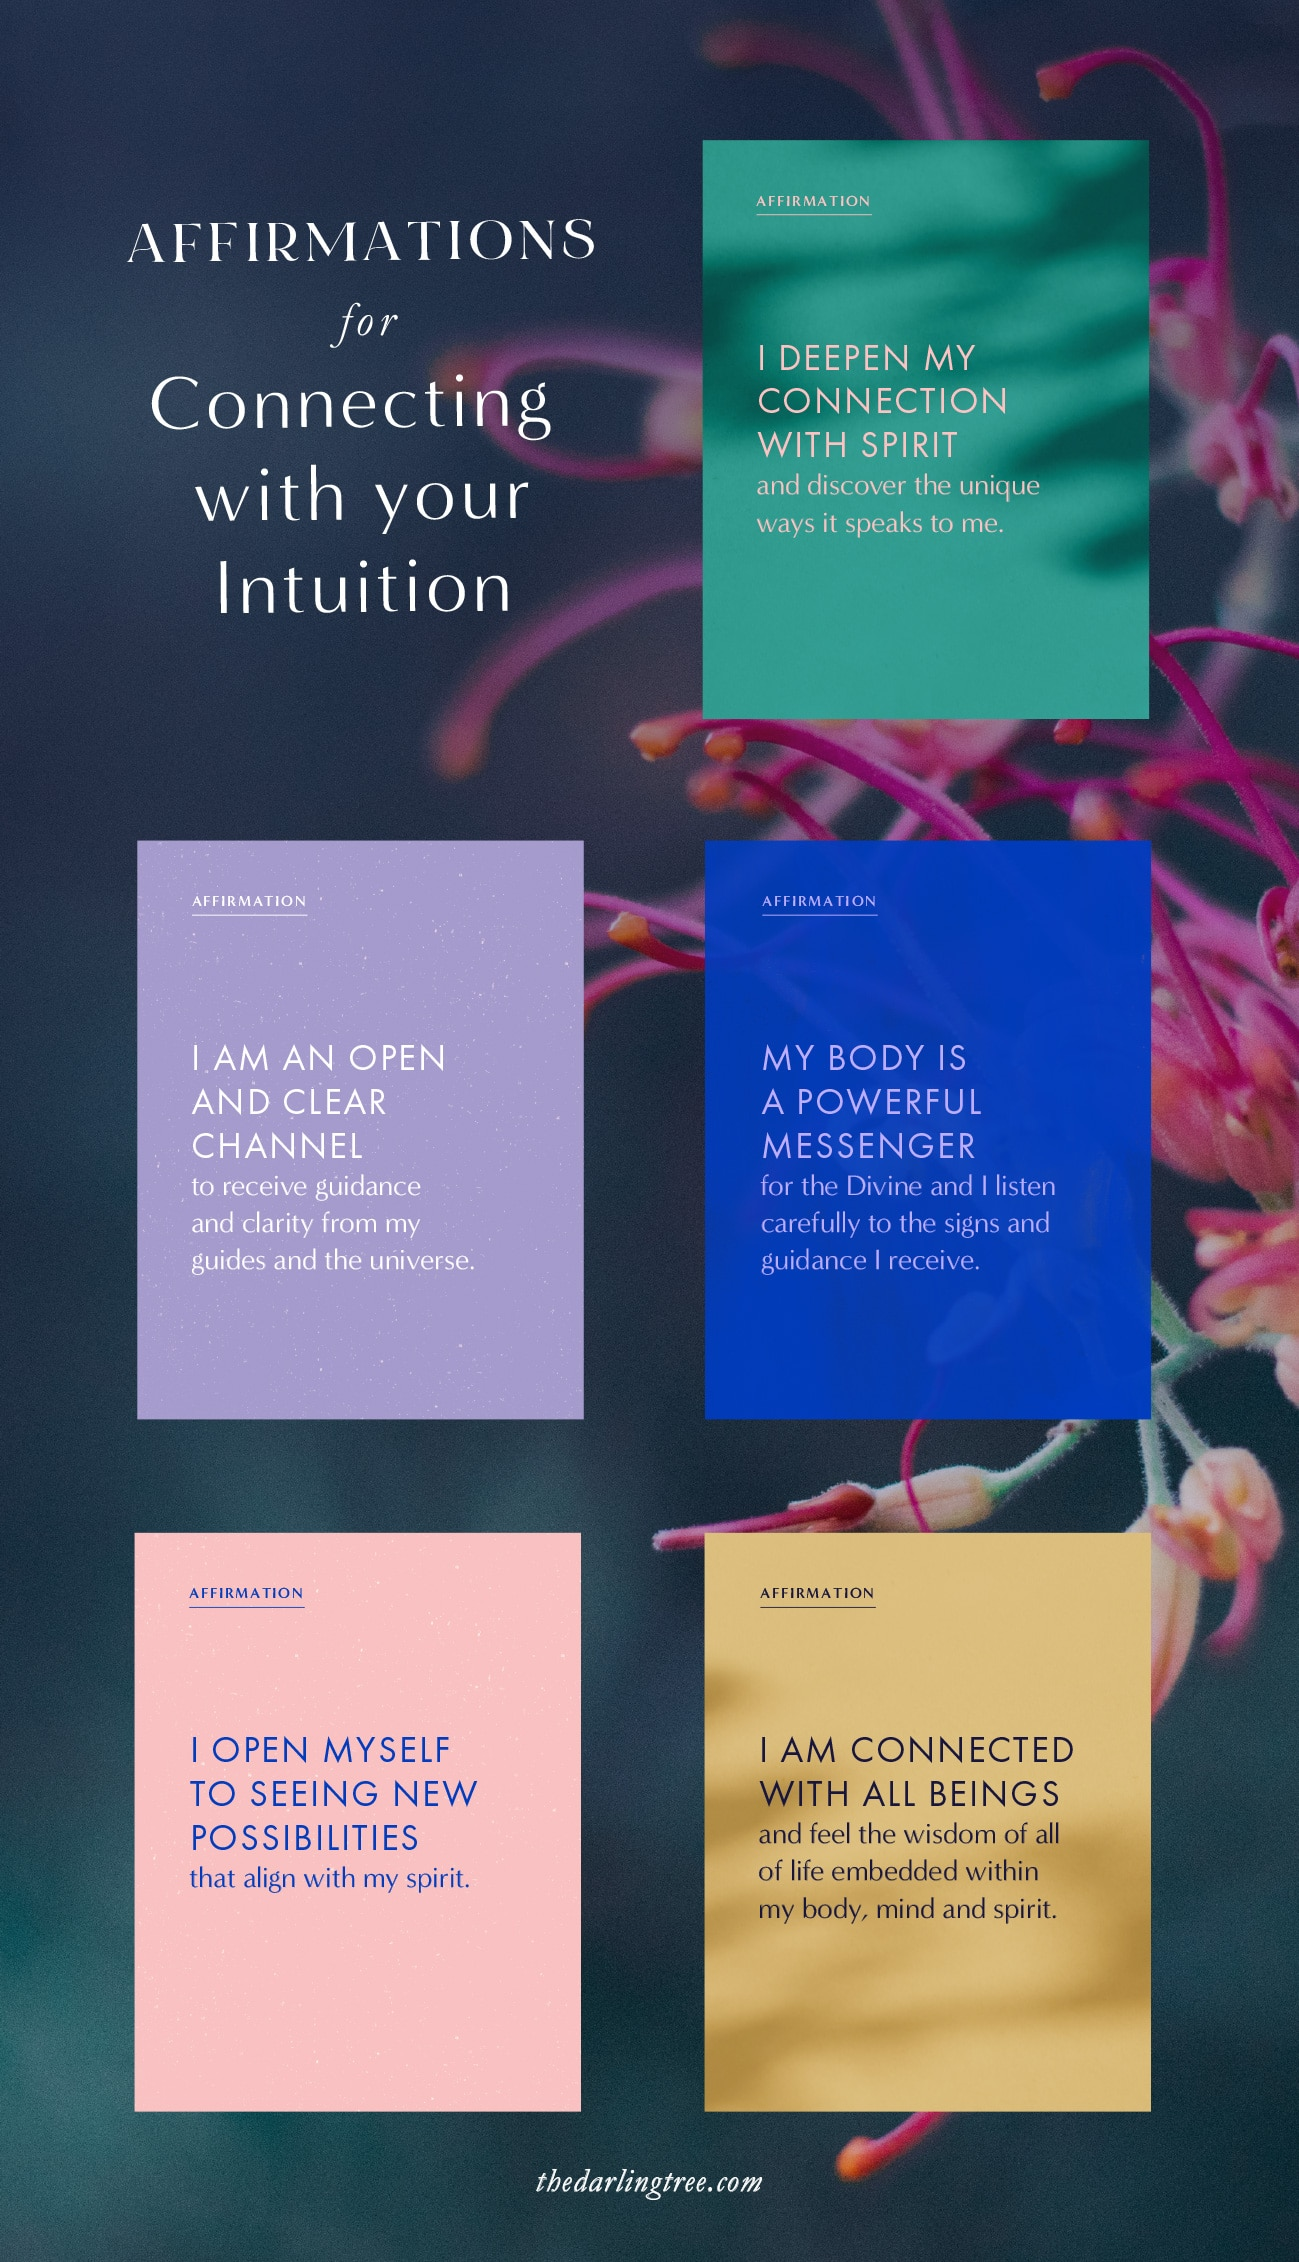 Affirmations for connecting with your intuition